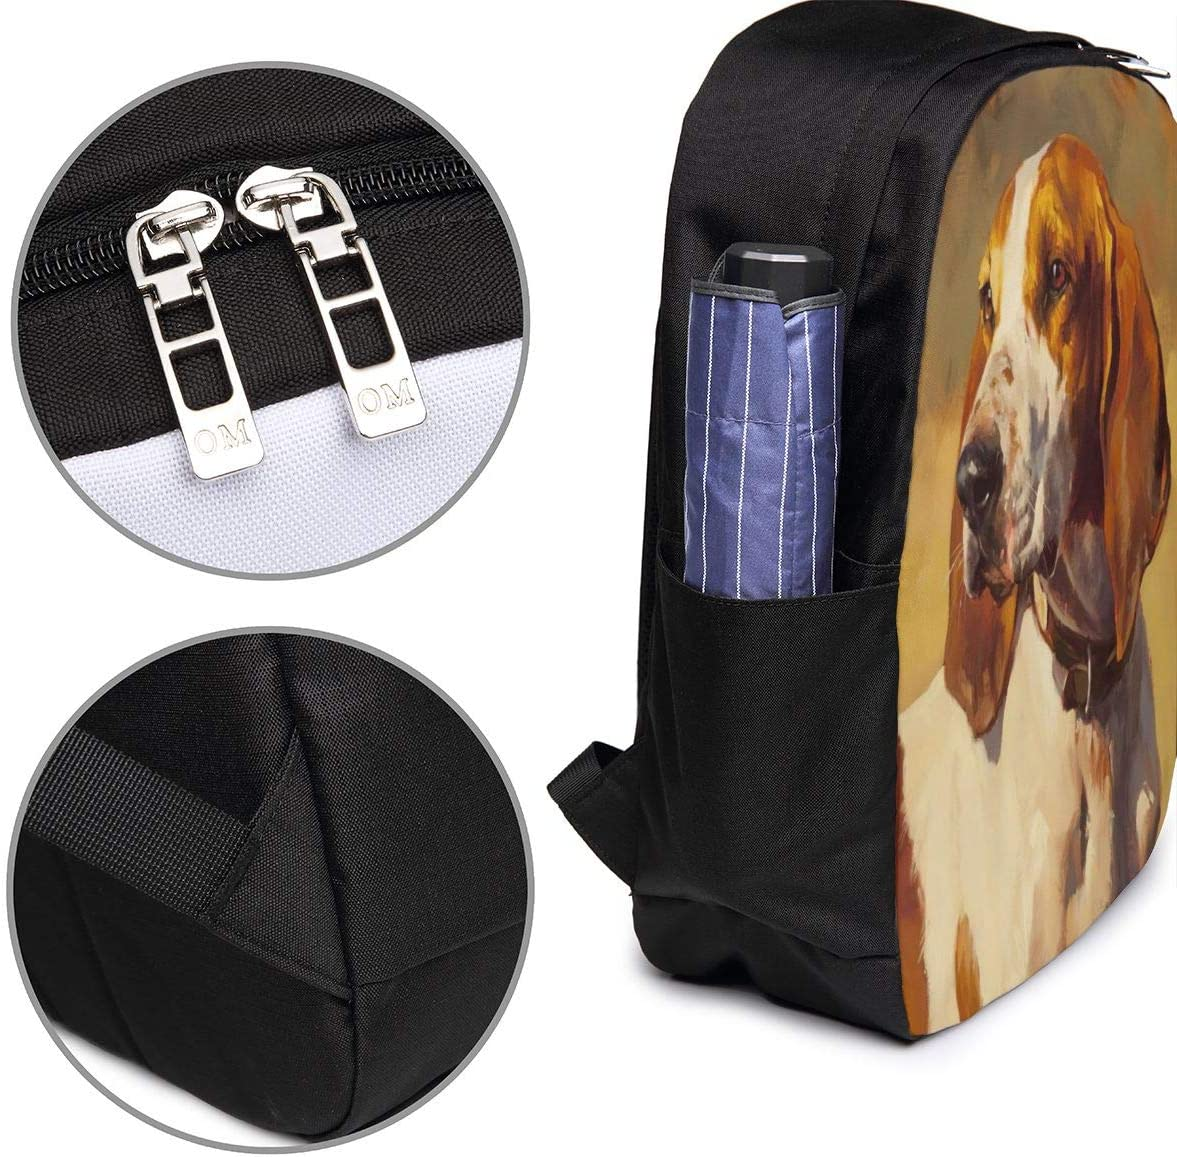 Funny Vintage Basset Hound Dog Personality 17 Inch College School Computer Bag Laptop Backpack with USB Charging Port for Women Men College Student Travel Outdoor Camping Daypack